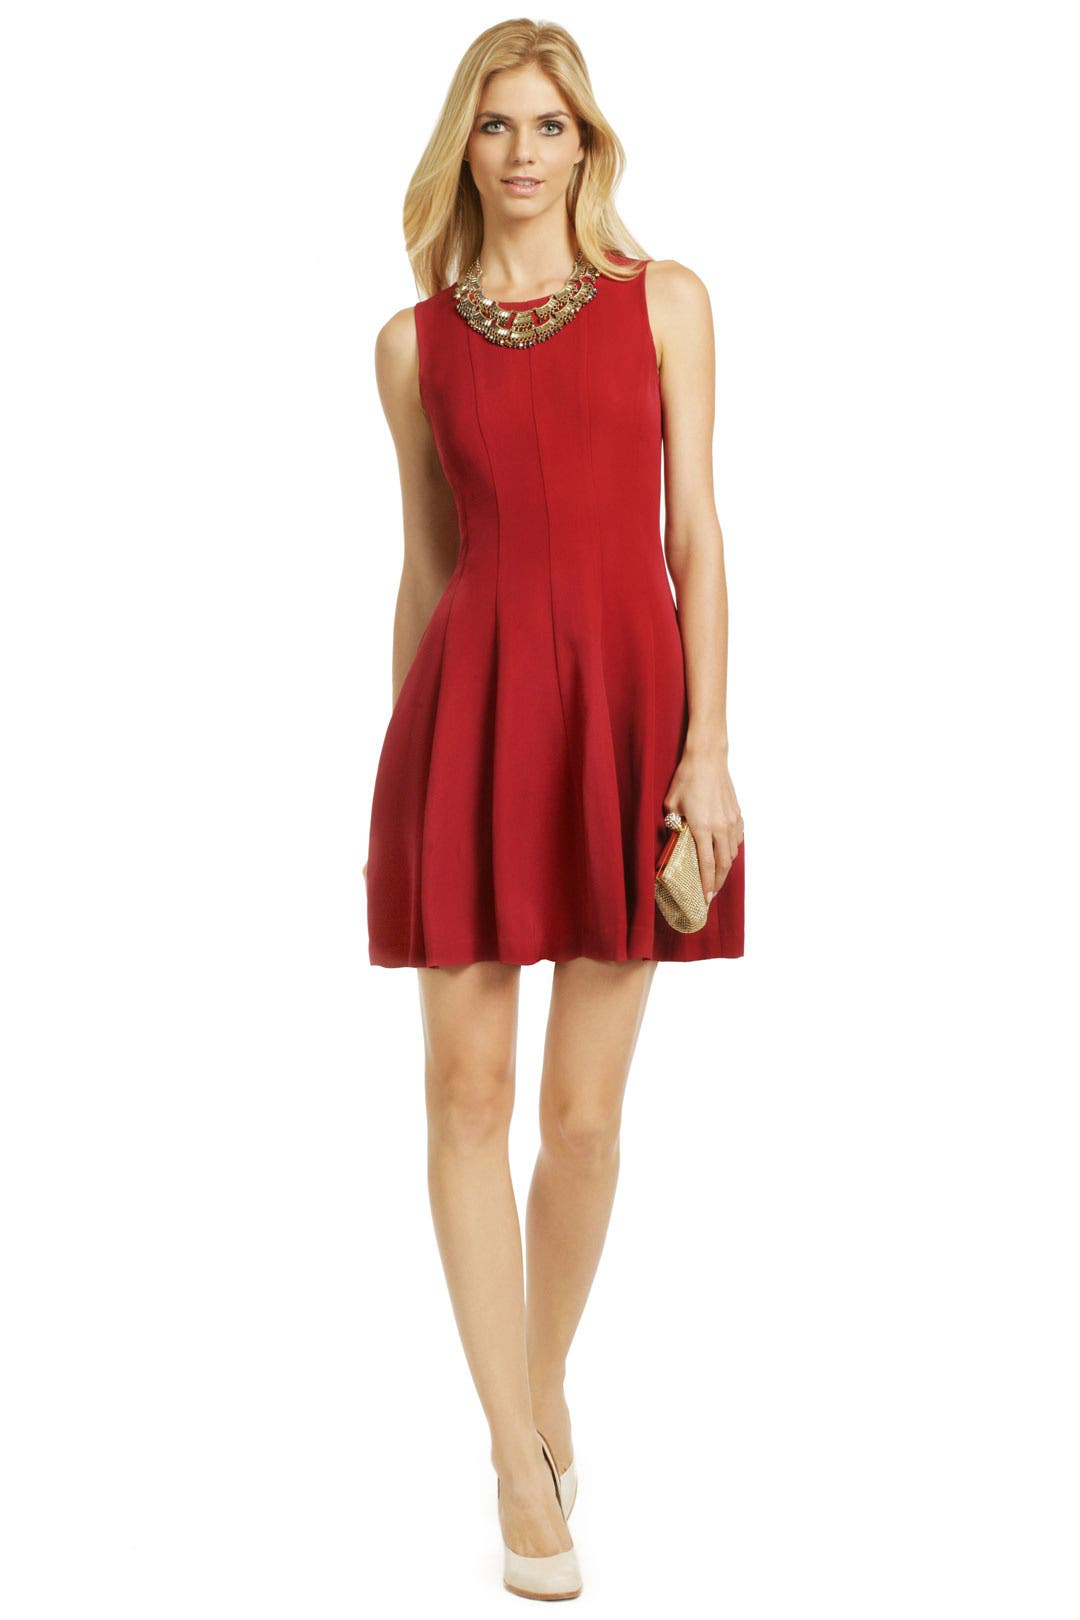 Mad Crushing On You Dress by Theory